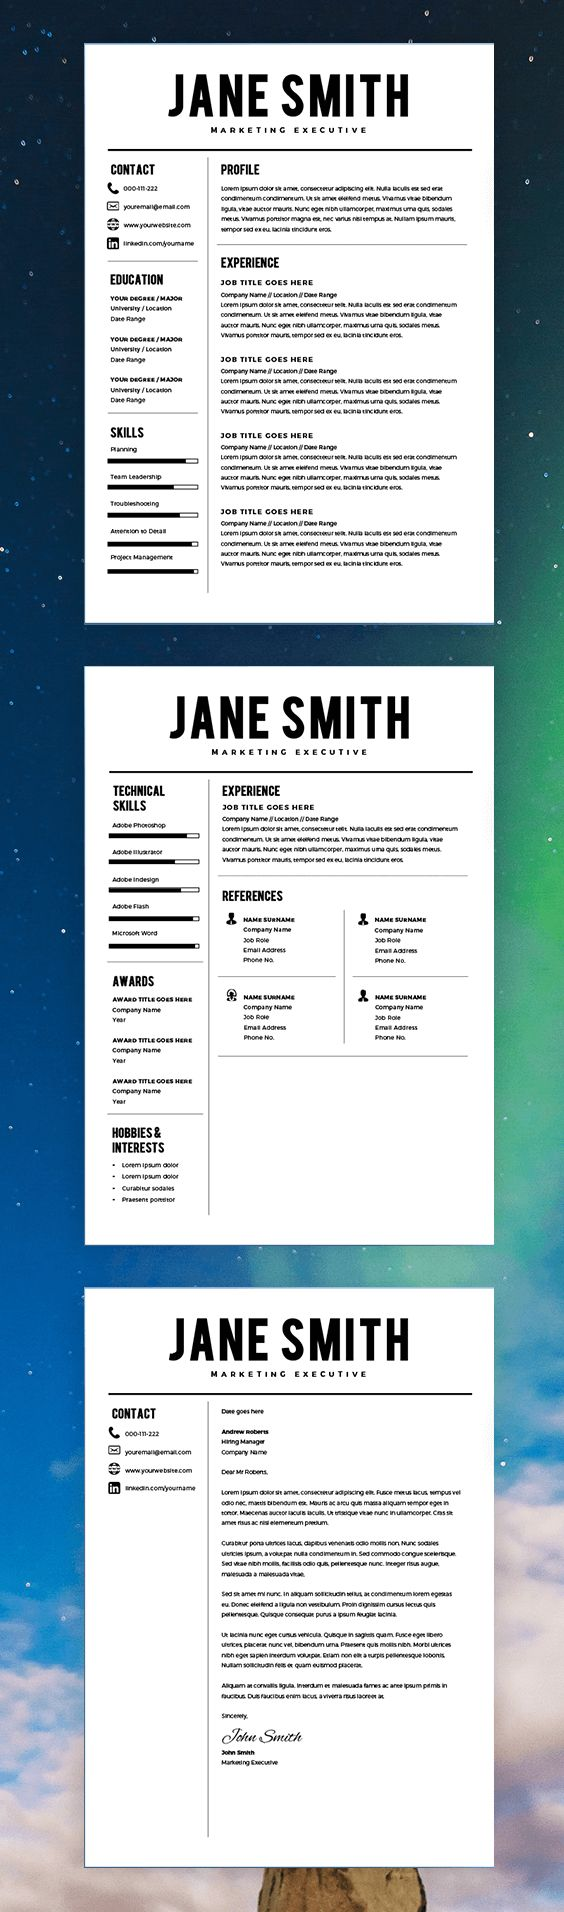 best resume template cv template free cover letter ms word on mac - Free Professional Cv Template